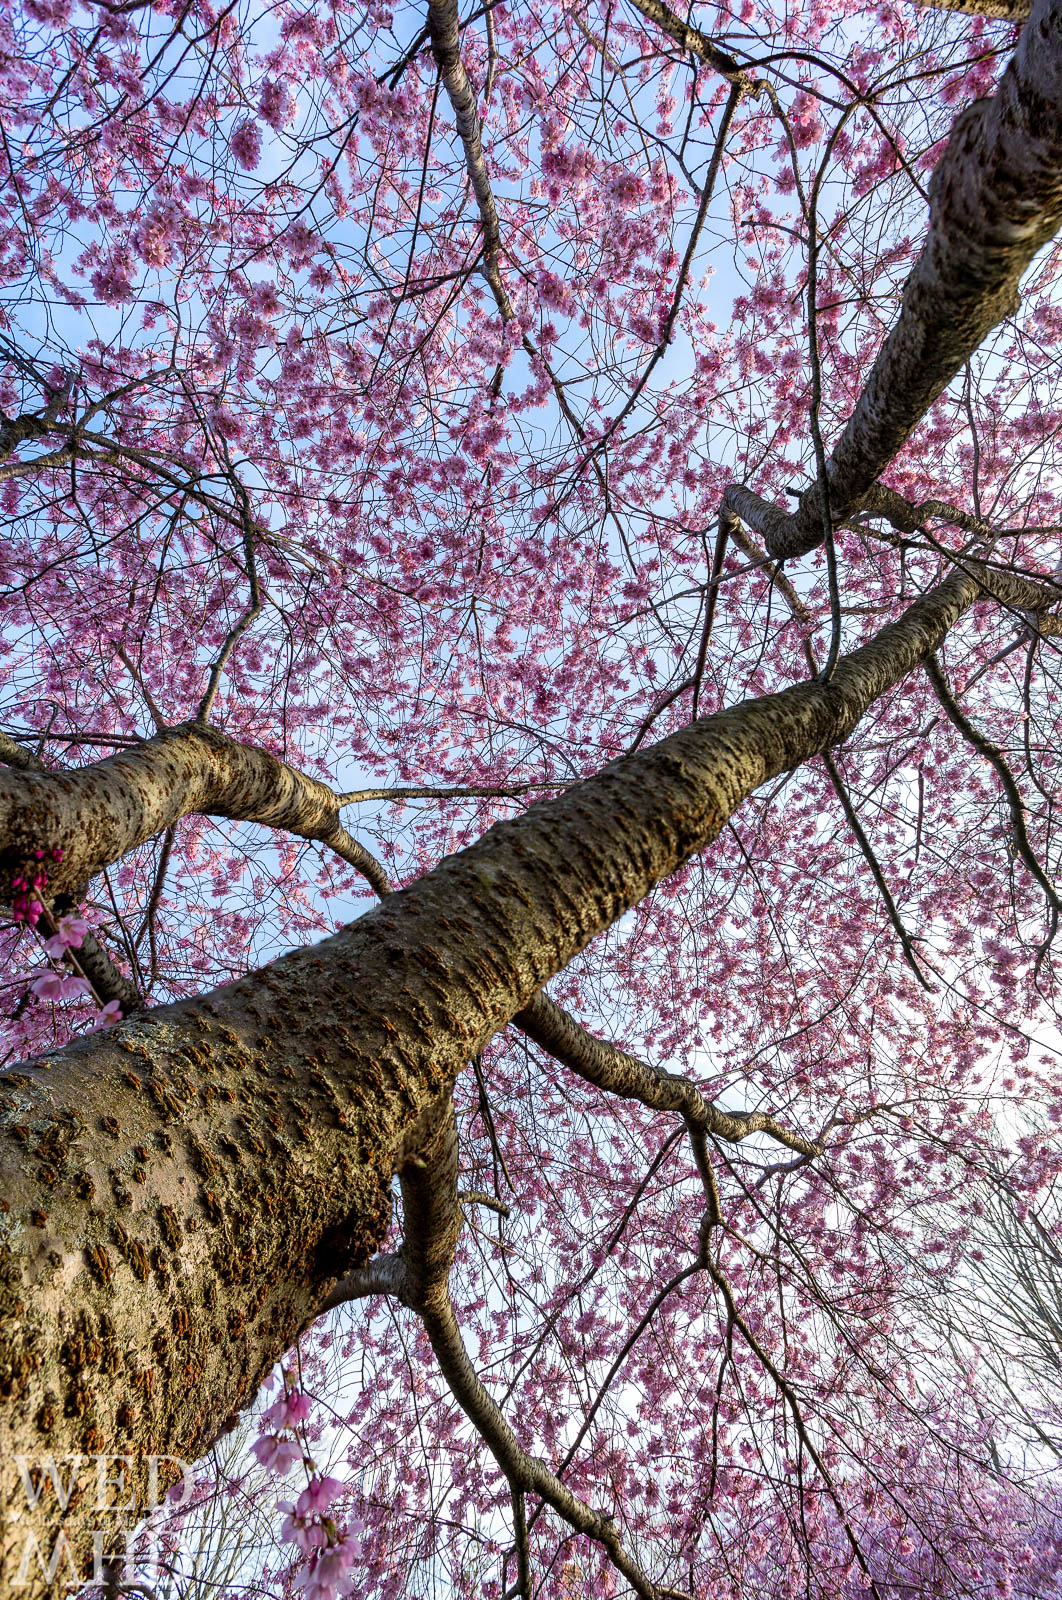 Looking up at the canopy of a cherry blossom tree